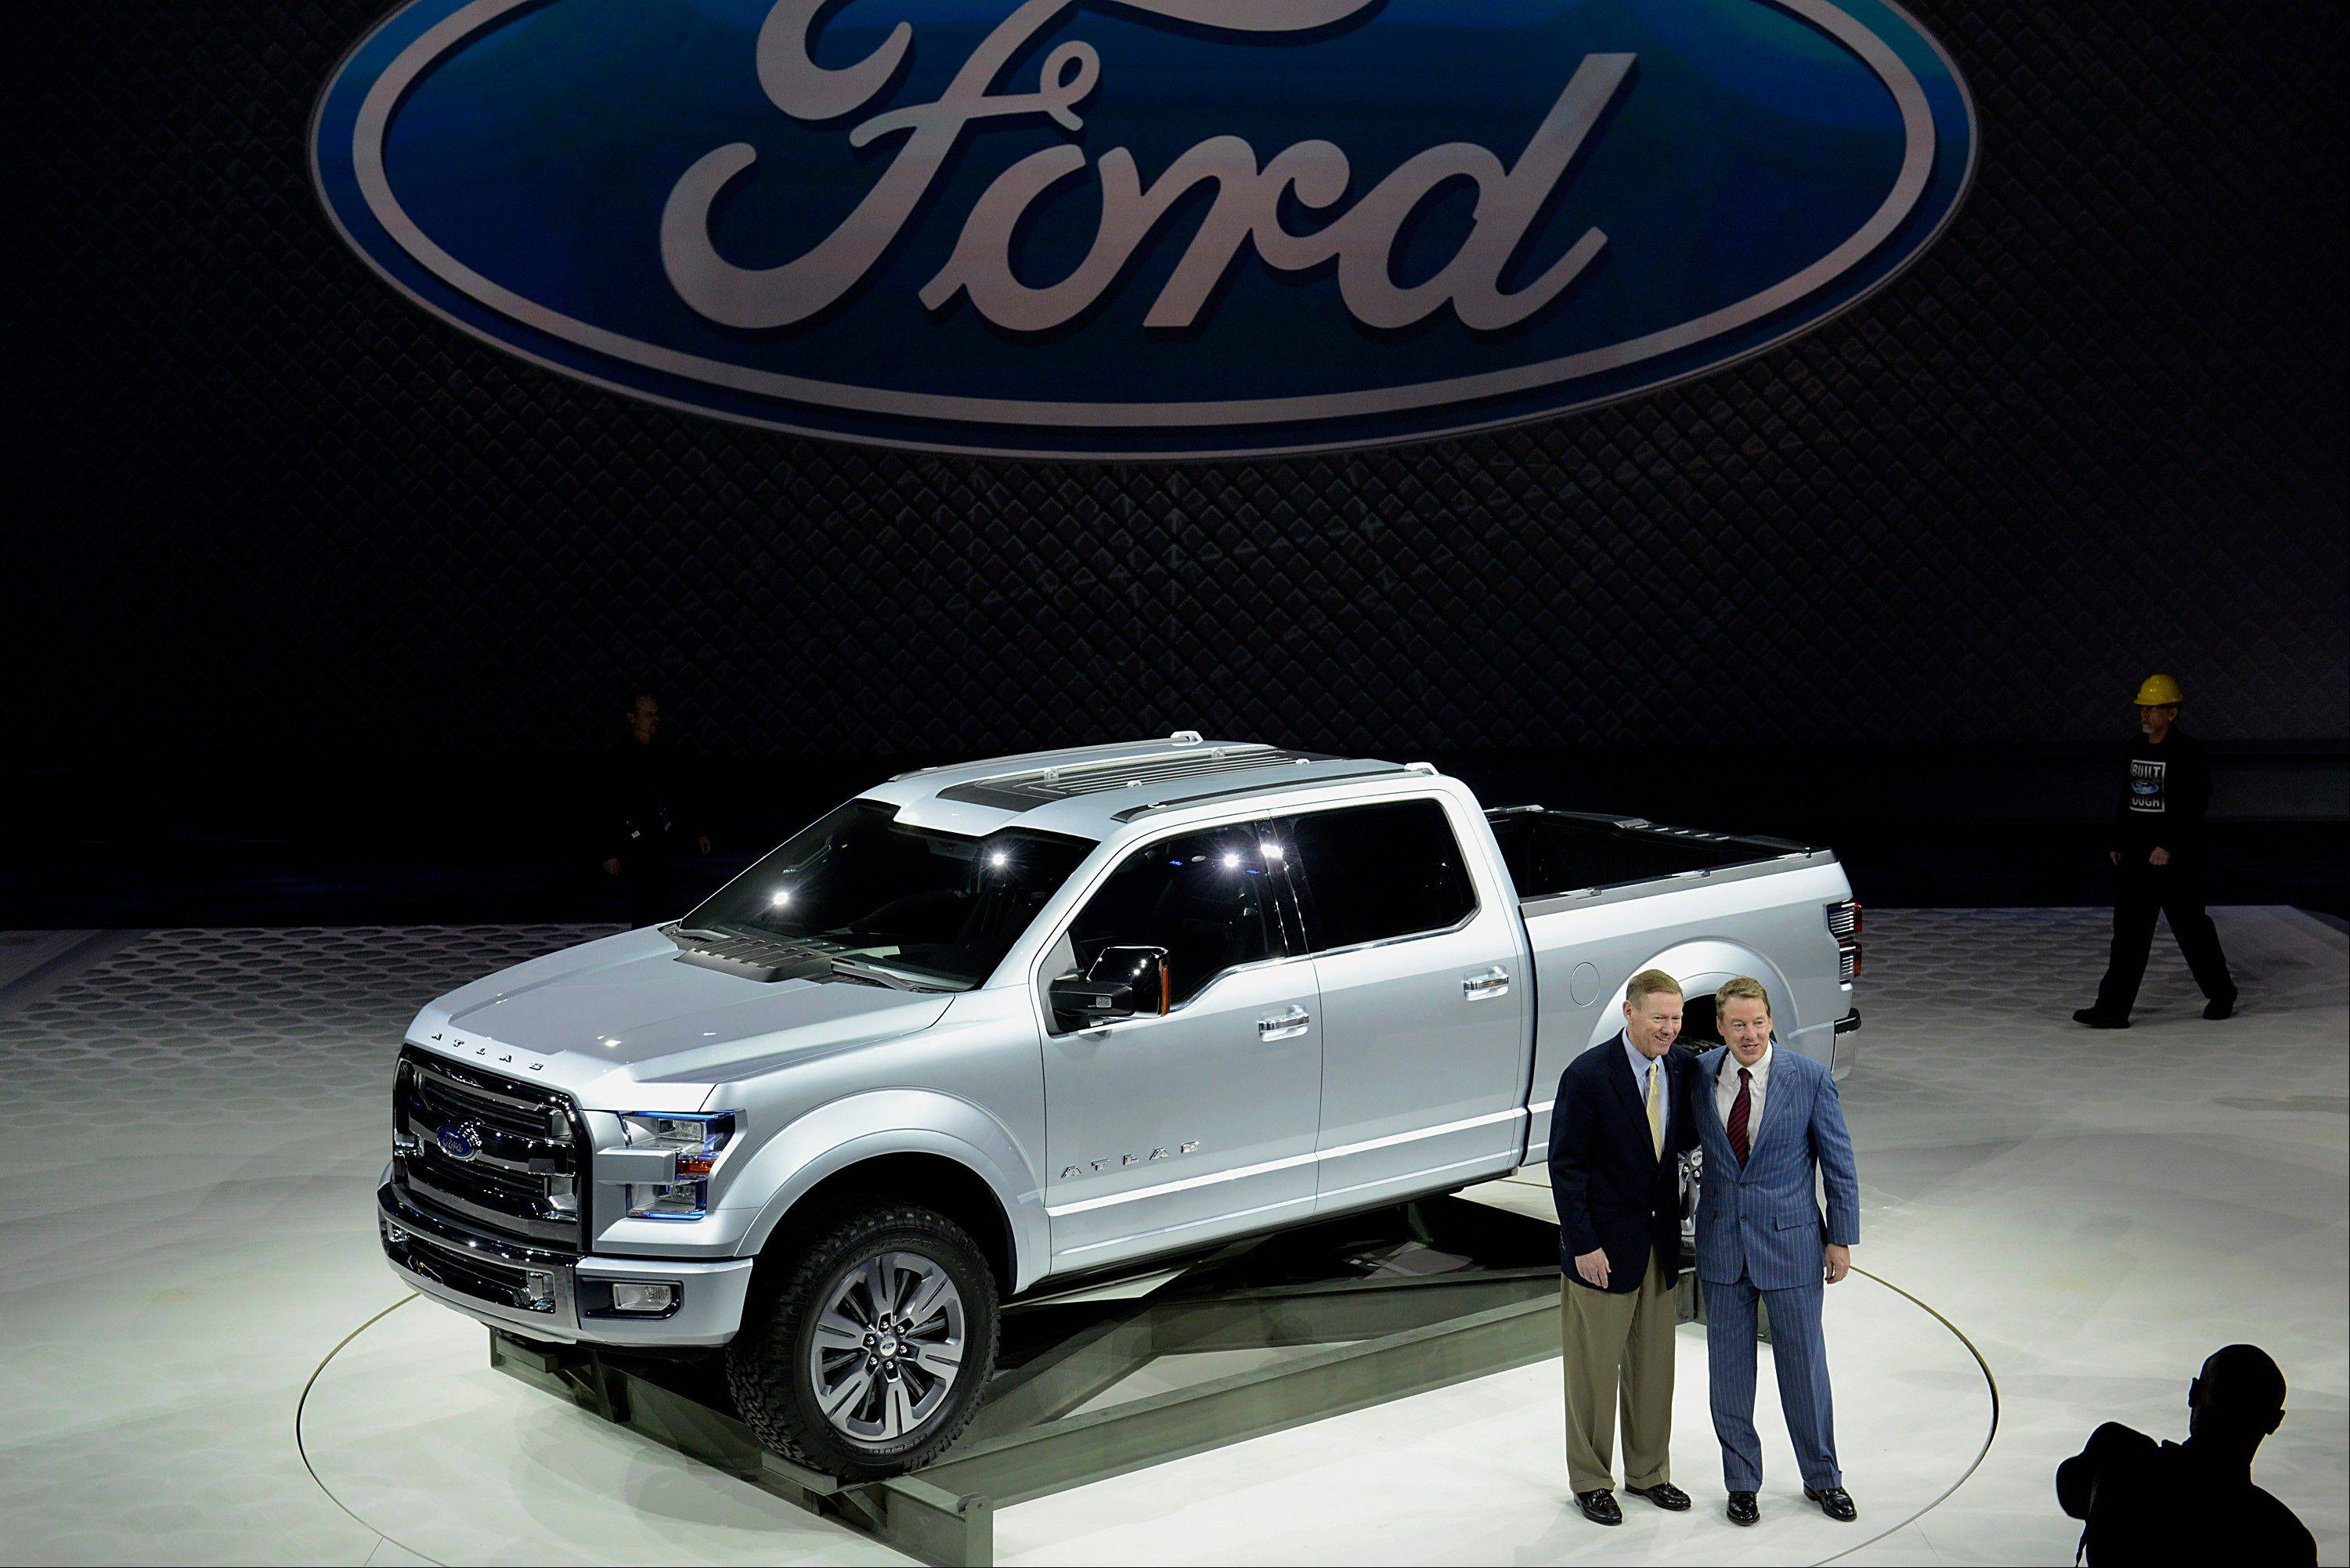 Alan Mulally, president and chief executive officer of Ford Motor Co., left, and Bill Ford, executive chairman of Ford Motor Co., stand for a photograph in front of the F-150 Atlas concept truck during the 2013 North American International Auto Show (NAIAS) in Detroit, Michigan, U.S., on Tuesday, Jan. 15, 2013.